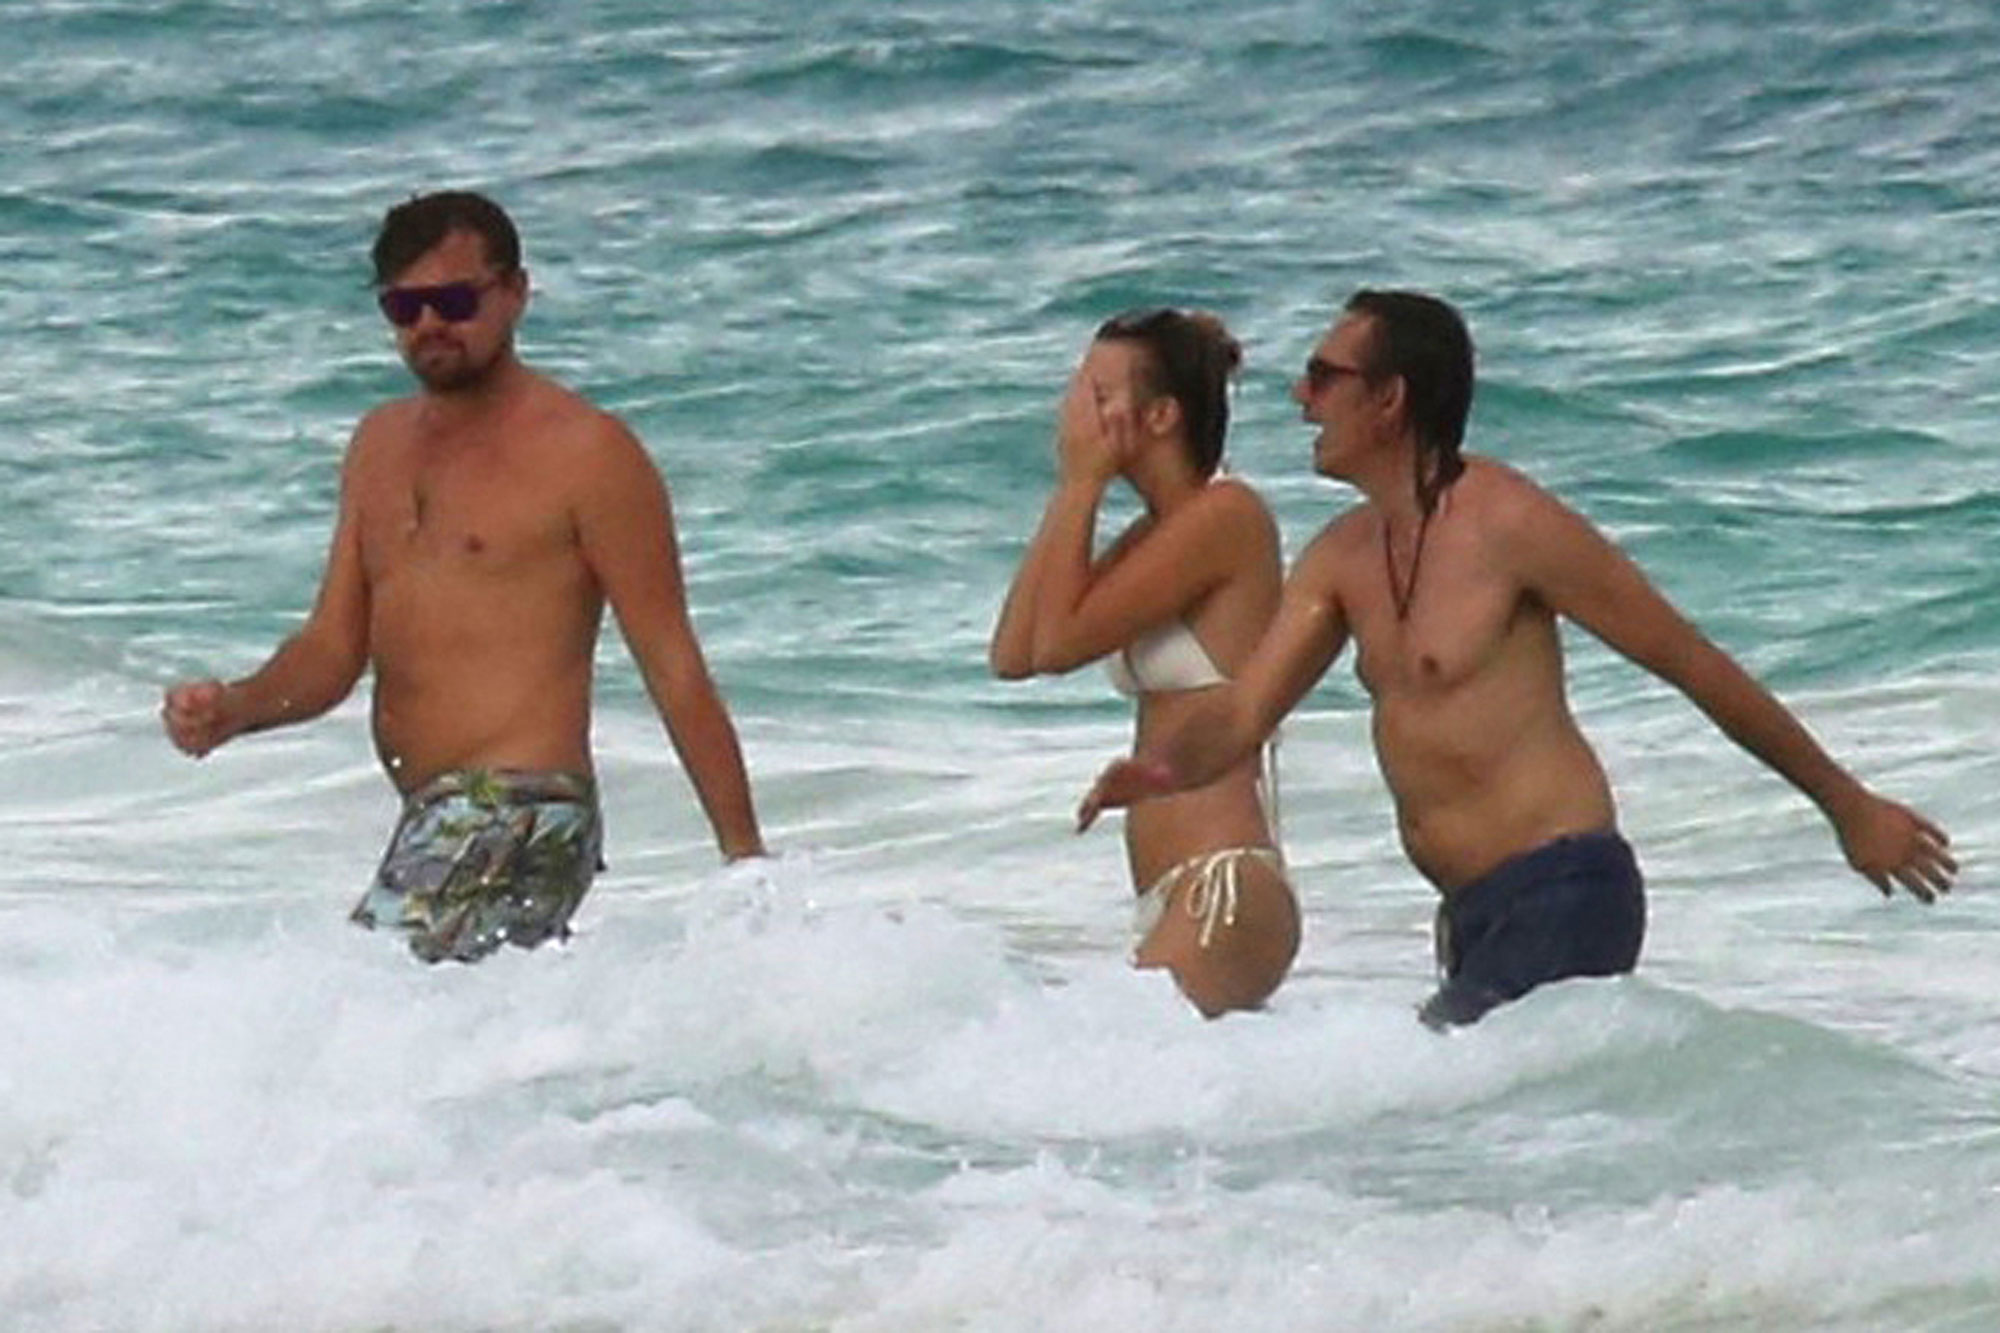 Leonardo DiCaprio and his buddy Lukas Haas swim in Cancun